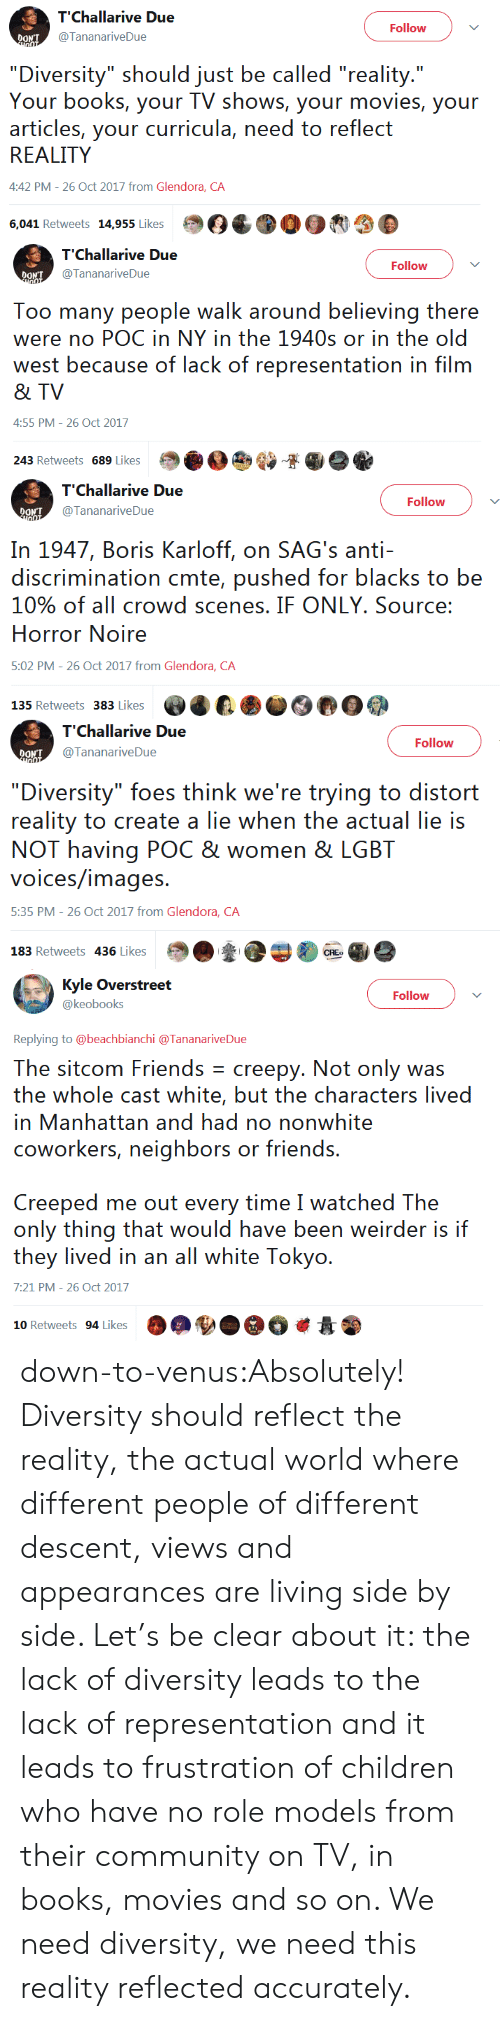 """Sags: Follow  OONT  @TananariveDue  """"Diversity"""" should just be called """"reality.""""  Your books, your TV shows, your movies, your  articles, your curricula, need to reflect  REALITY  4:42 PM-26 Oct 2017 from Glendora, CA  6,041 Retweets 195esOC003   T'Challarive Due  TTananariveDue  Follow  Too many people walk around believing there  were no POC in NY in the 1940s or in the old  west because of lack of representation in film  & TV  4:55 PM- 26 Oct 2017  243 Retweets 689 Likes Sie   Follow  @TananariveDue  In 1947, Boris Karloff, on SAG's anti-  discrimination cmte, pushed for blacks to be  10% of all crowd scenes, IF ONLY, Source:  Horror Noire  5:02 PM- 26 Oct 2017 from Glendora, CA   Follow  DONT  @TananariveDue  """"Diversity"""" foes think we're trying to distort  reality to create a lie when the actual lie is  NOT having POC & women & LGBT  voices/images  5:35 PM - 26 Oct 2017 from Glendora, CA  183 Retweets 436 Likes   Follow  @keobooks  Replying to @beachbianchi @TananariveDue  The sitcom Friends creepy. Not only was  the whole cast whites, buui. thee characters lived  in Manhattan and had no nonwhite  coworkers, neighbors or friends.  Creeped me out every time I watched The  only thing that would have been weirder is if  they lived in ar al whiie: Tokyo.  7:21 PM-26 Oct 2017  10 Retweets 94 LikesOA down-to-venus:Absolutely! Diversity should reflect the reality, the actual world where different people of different descent, views and appearances are living side by side. Let's be clear about it: the lack of diversity leads to the lack of representation and it leads to frustration of children who have no role models from their community on TV, in books, movies and so on. We need diversity, we need this reality reflected accurately."""